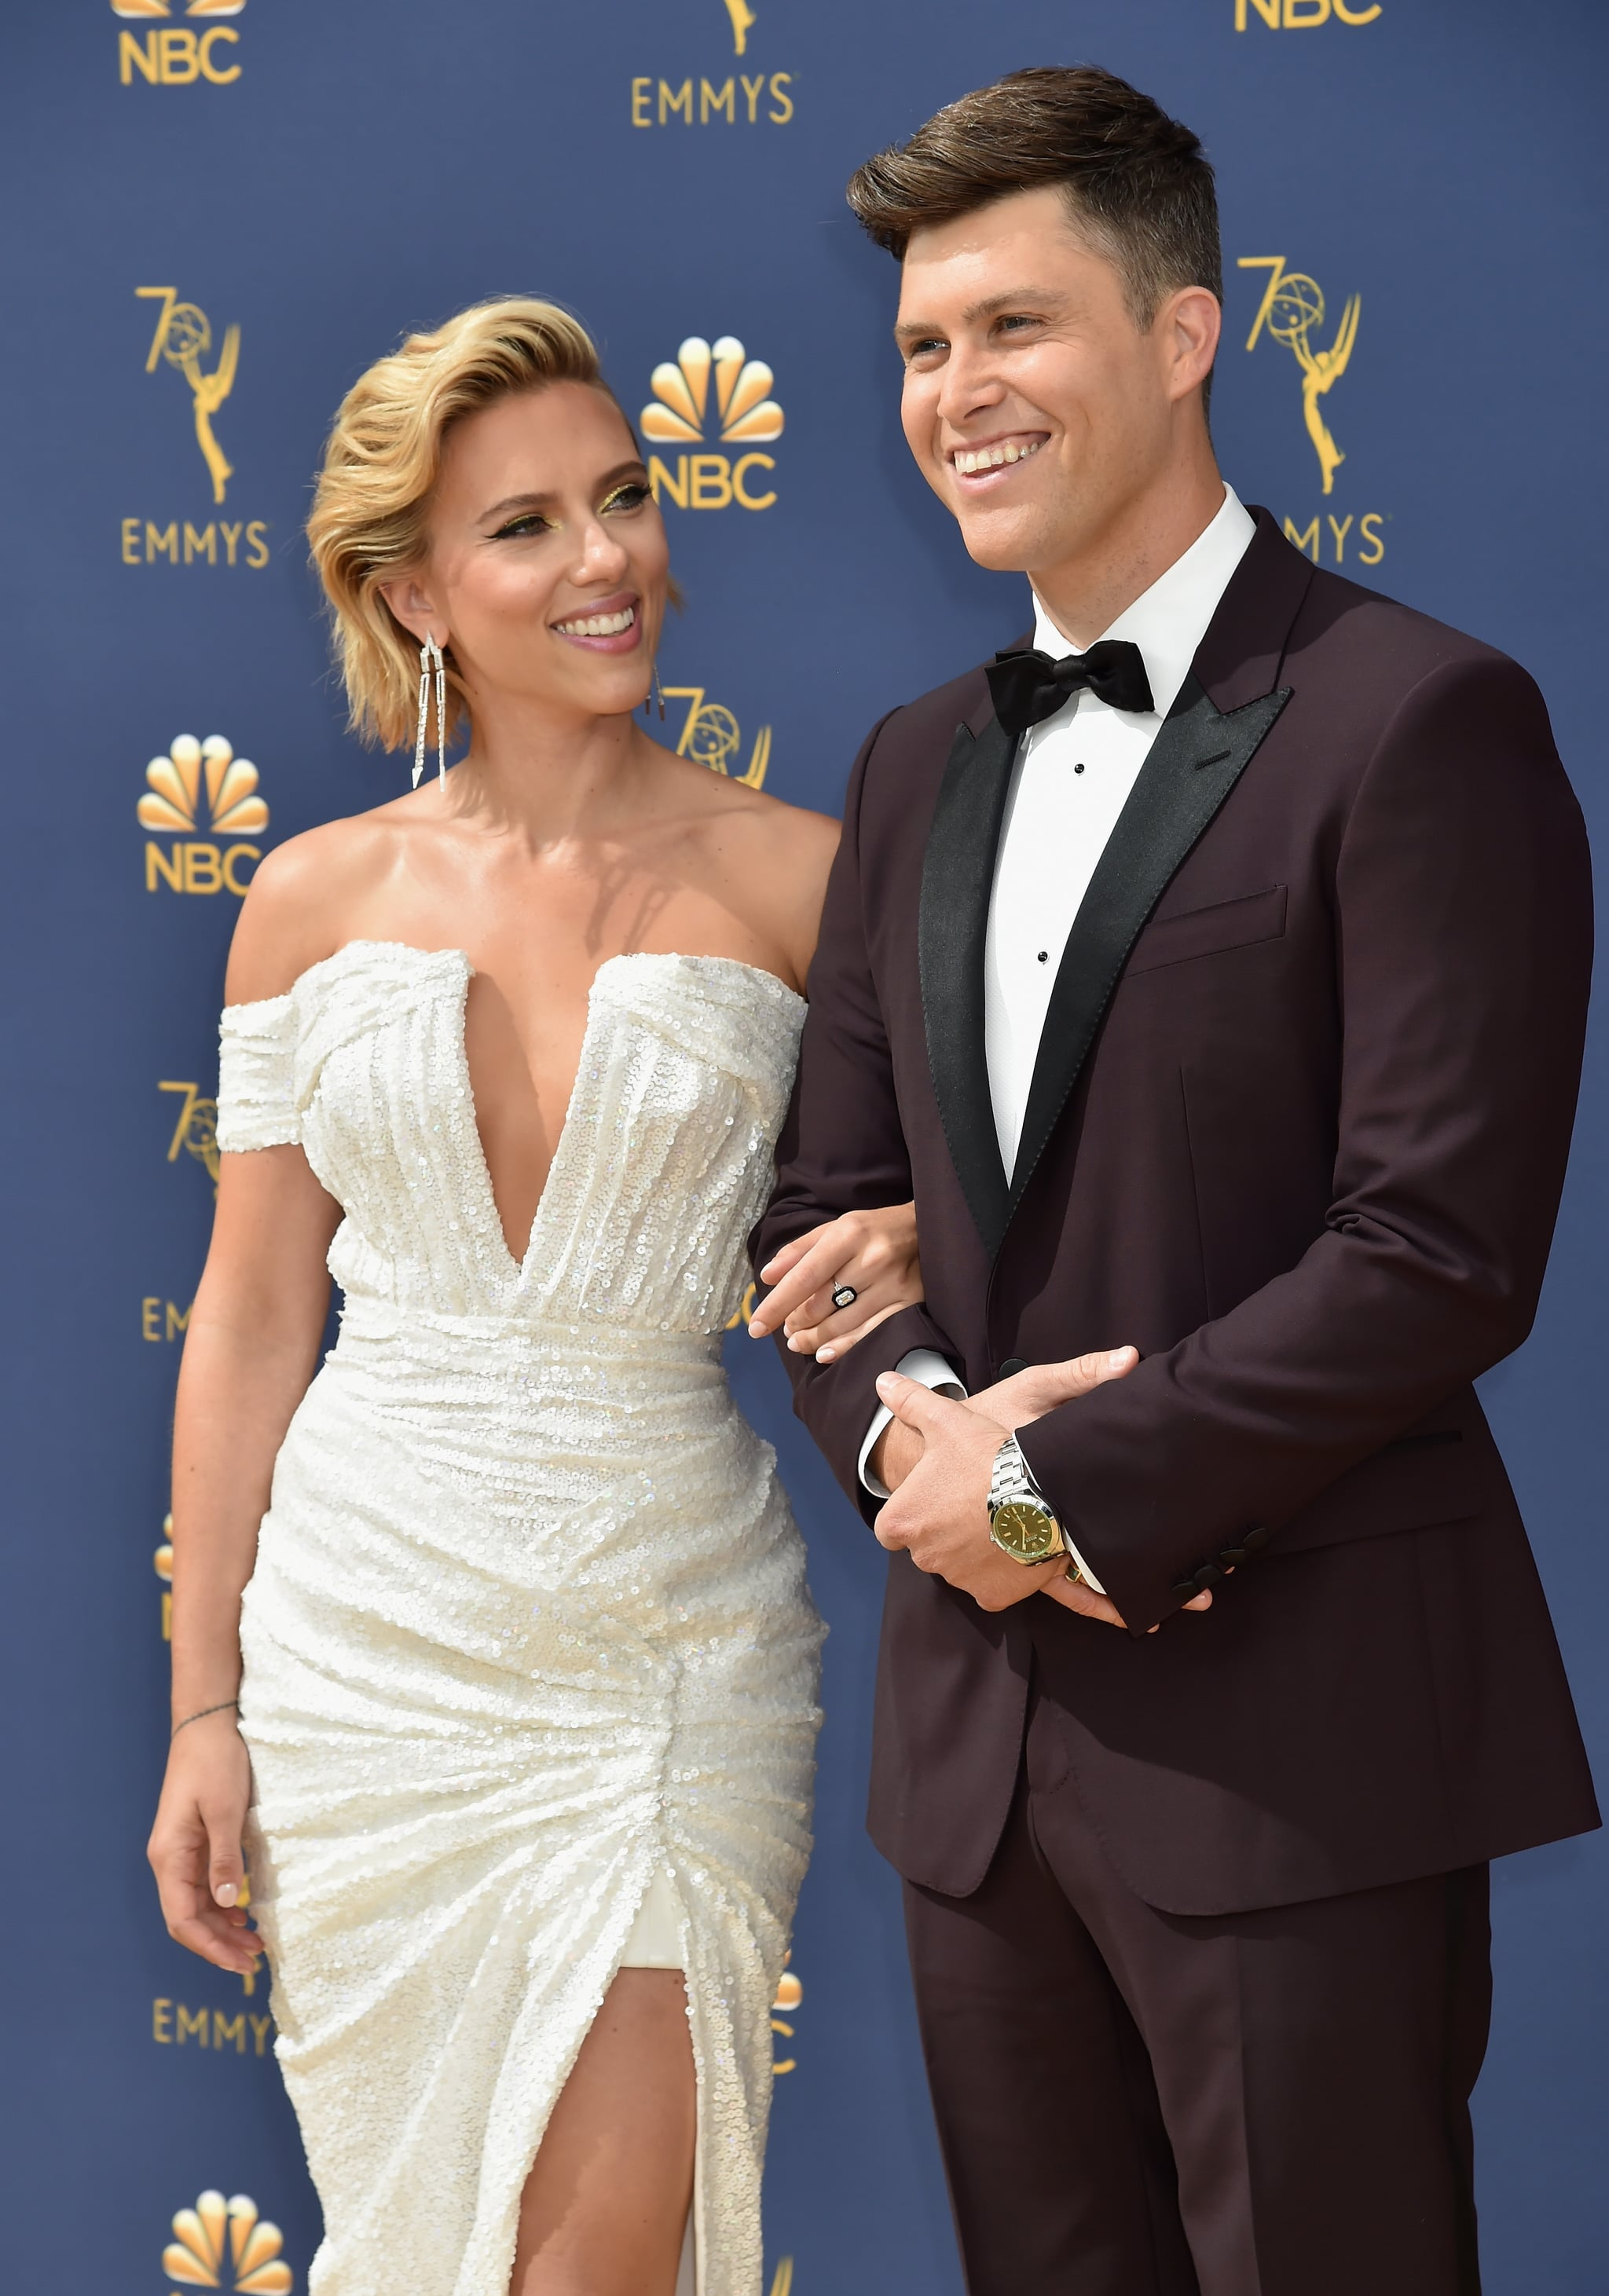 LOS ANGELES, CA - SEPTEMBER 17: Scarlett Johansson (L) and Colin Jost attend the 70th Emmy Awards at Microsoft Theater on September 17, 2018 in Los Angeles, California.  (Photo by Jeff Kravitz/FilmMagic)